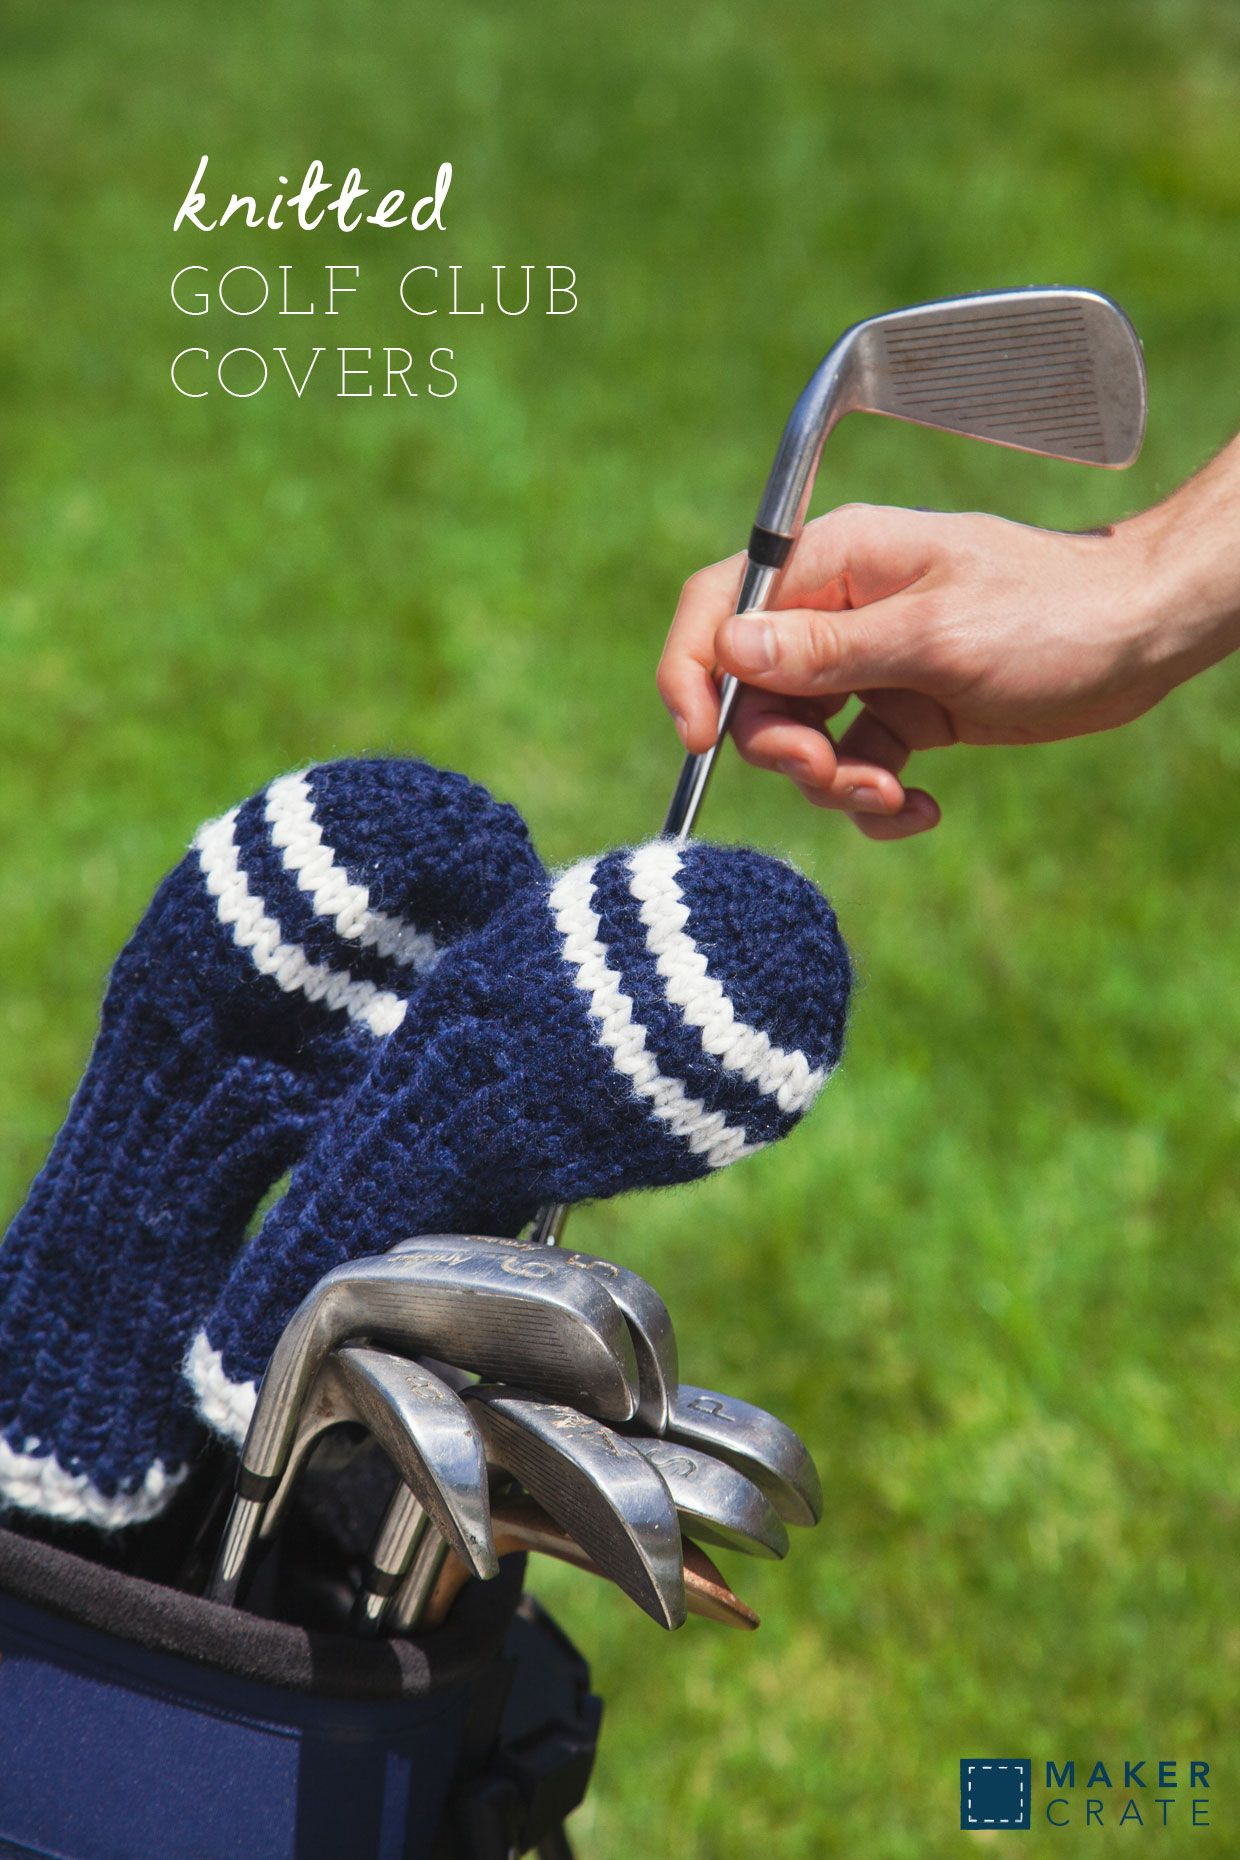 Knitted Golf Club Cover | Golf club covers, Golf bags and Golf clubs